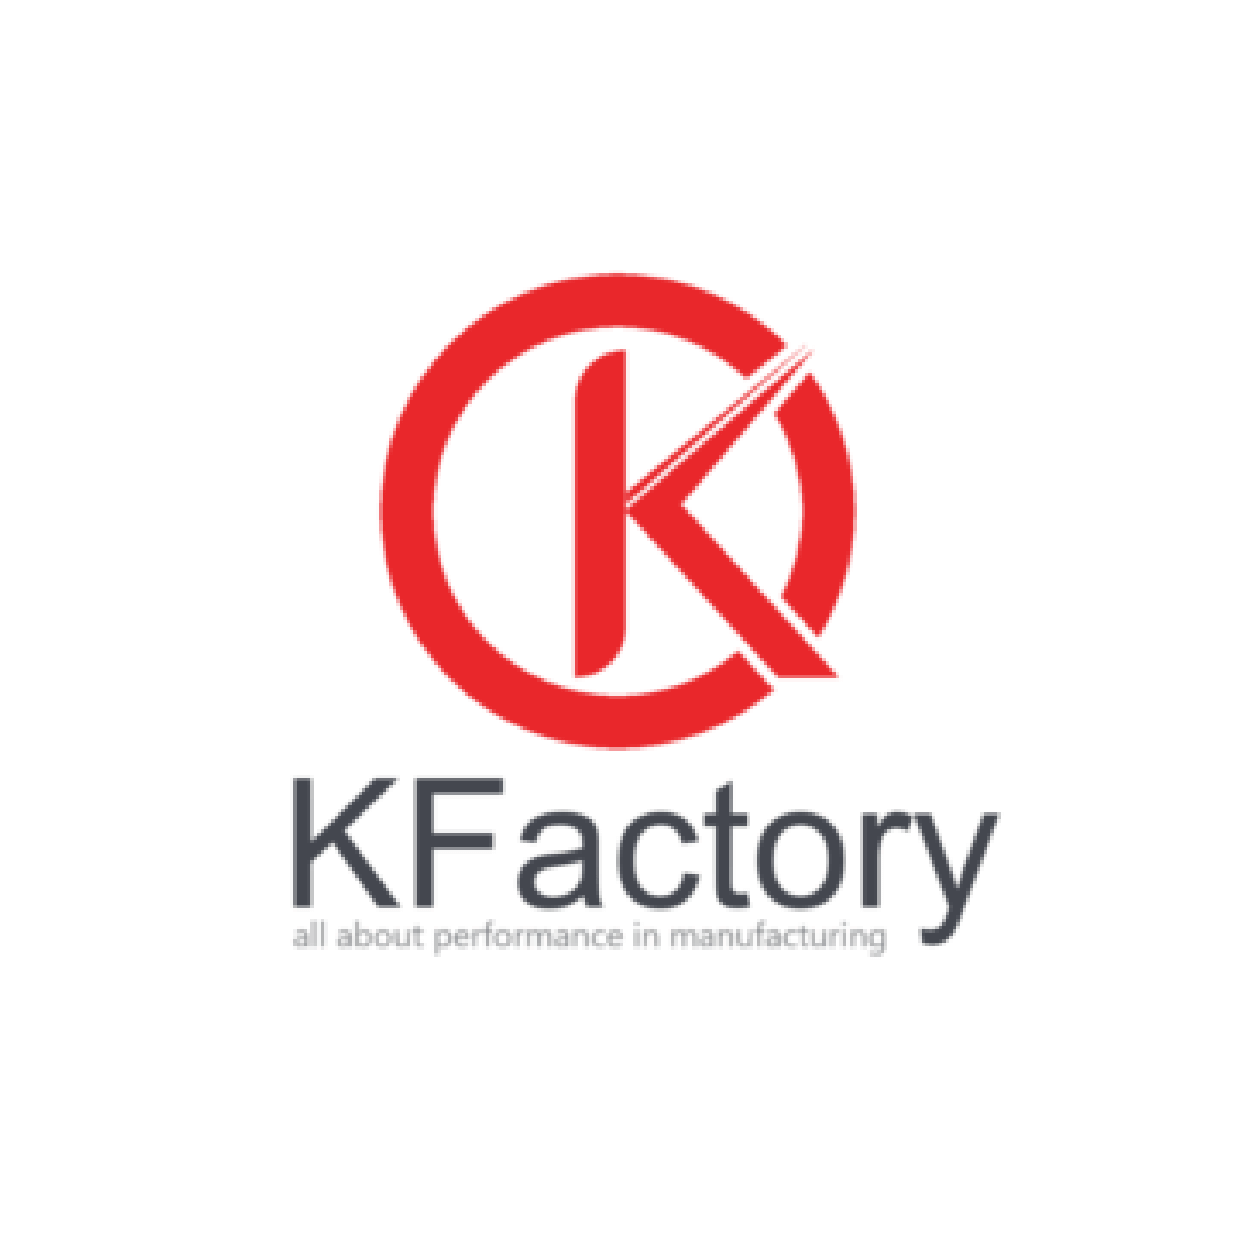 Kfactory by Upbeater